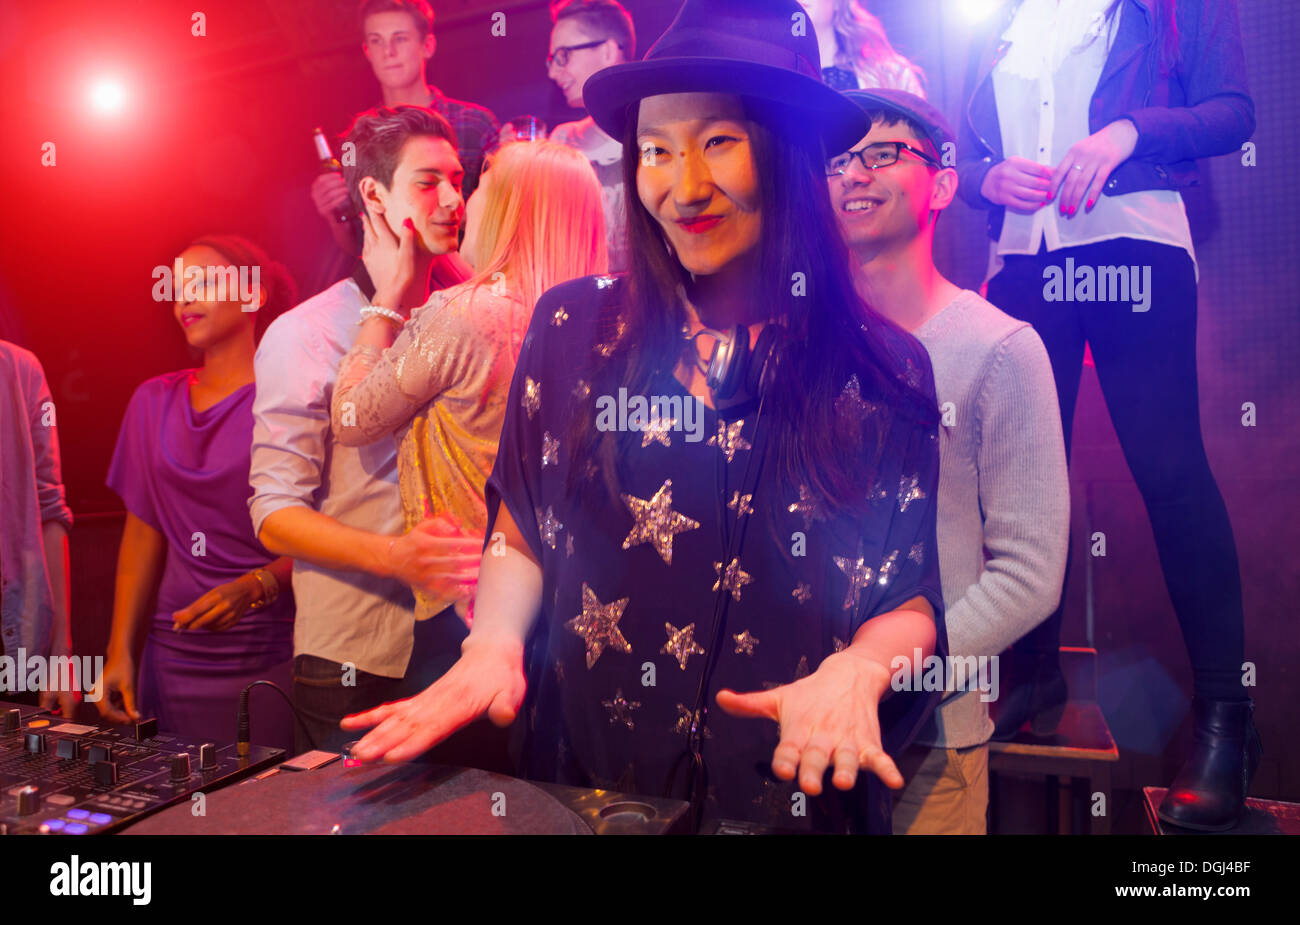 Mid adult woman DJing at party, people dancing in background - Stock Image